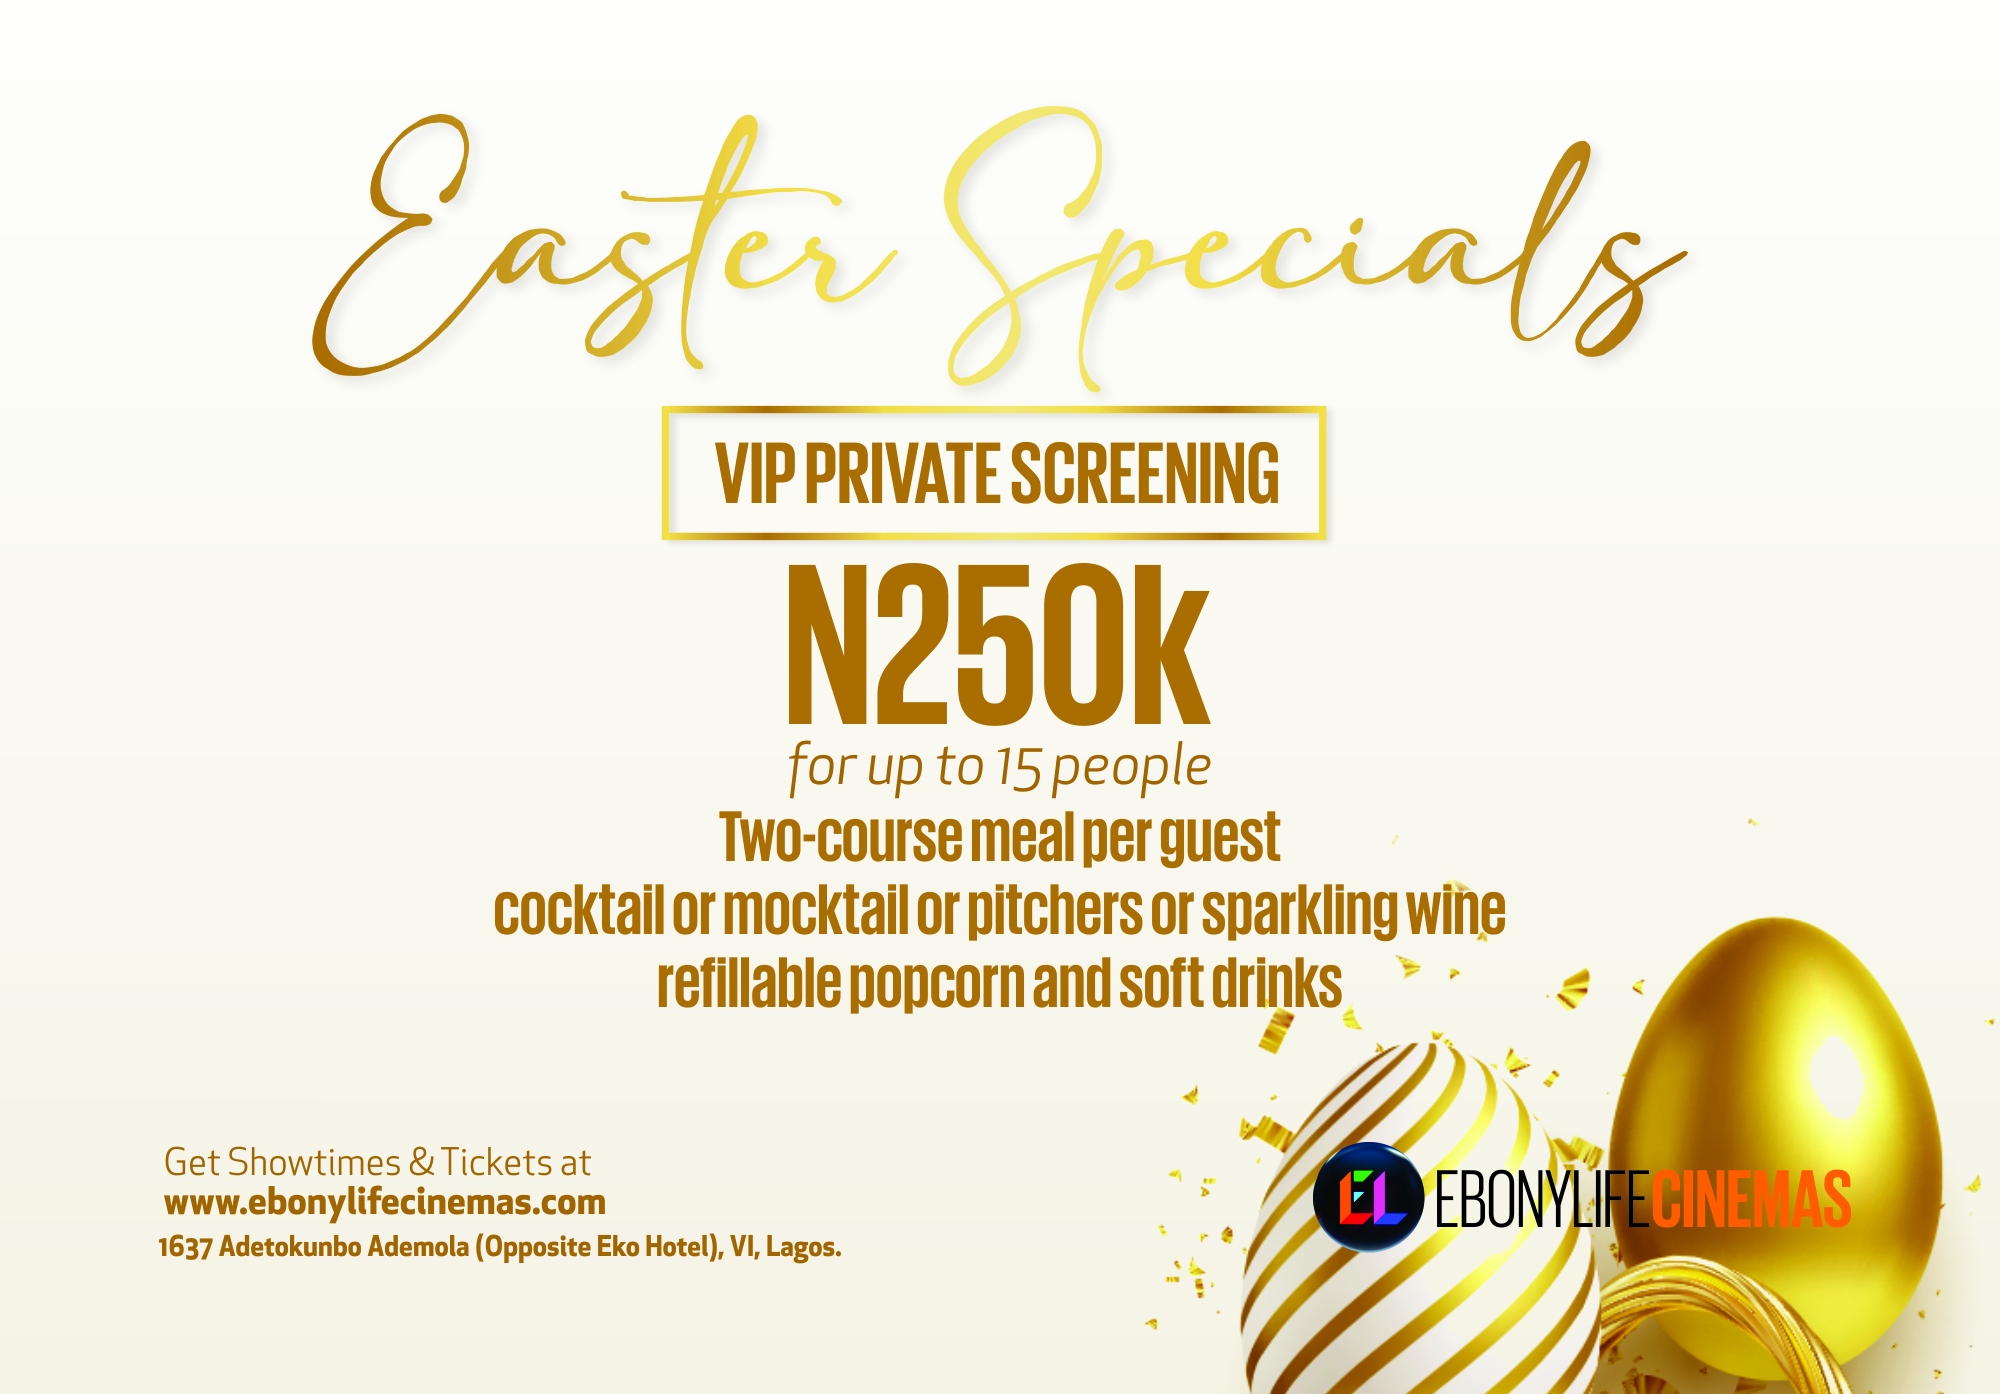 Easter Special VIP Private Screening